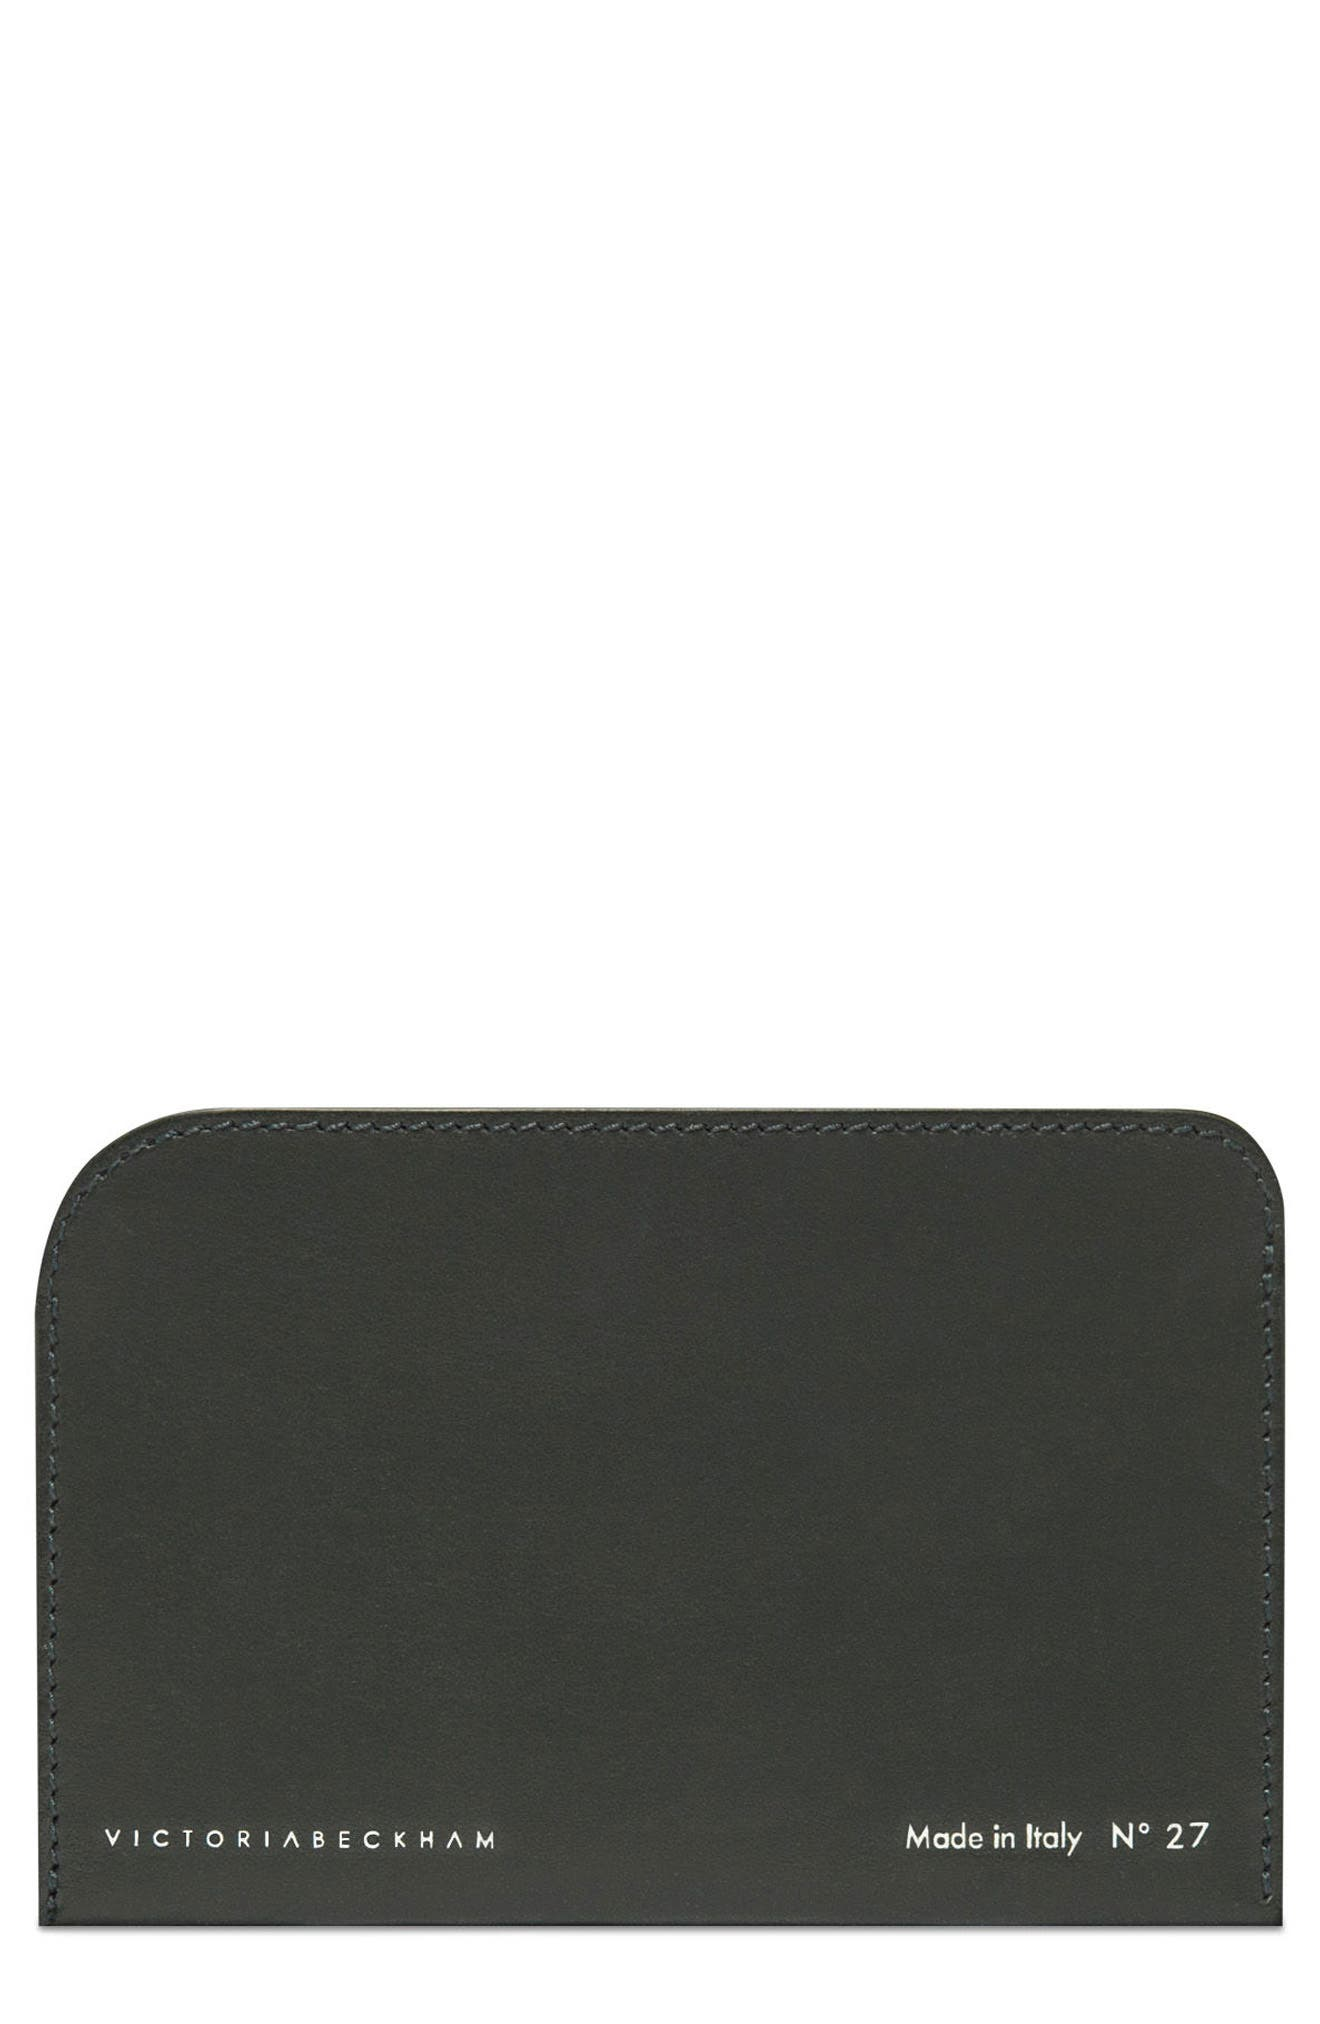 Victoria Beckham Leather Card Case